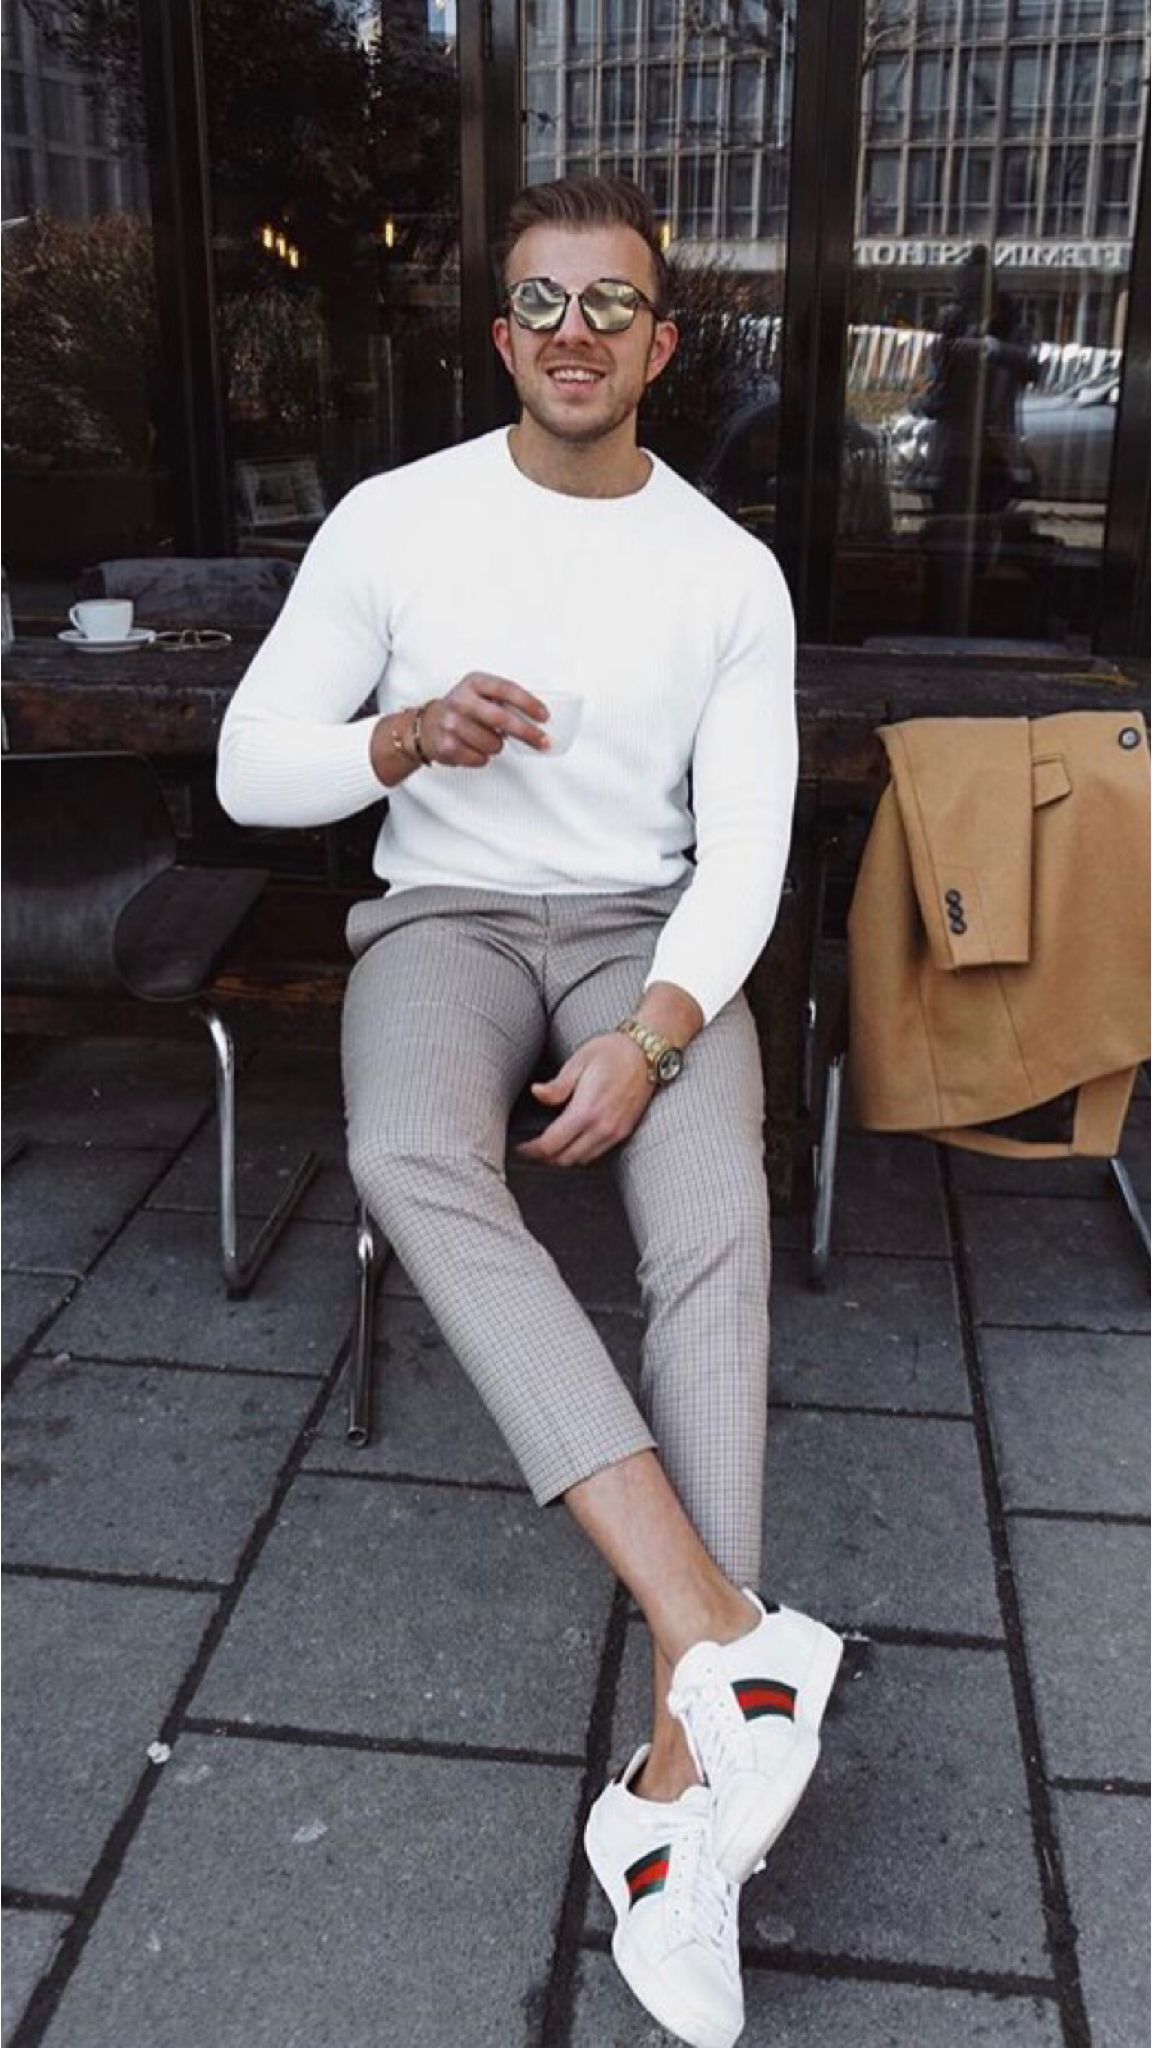 a6e4ba0d 20 Cool street style outfits! | Classy in 2019 | Fashion, Mens ...